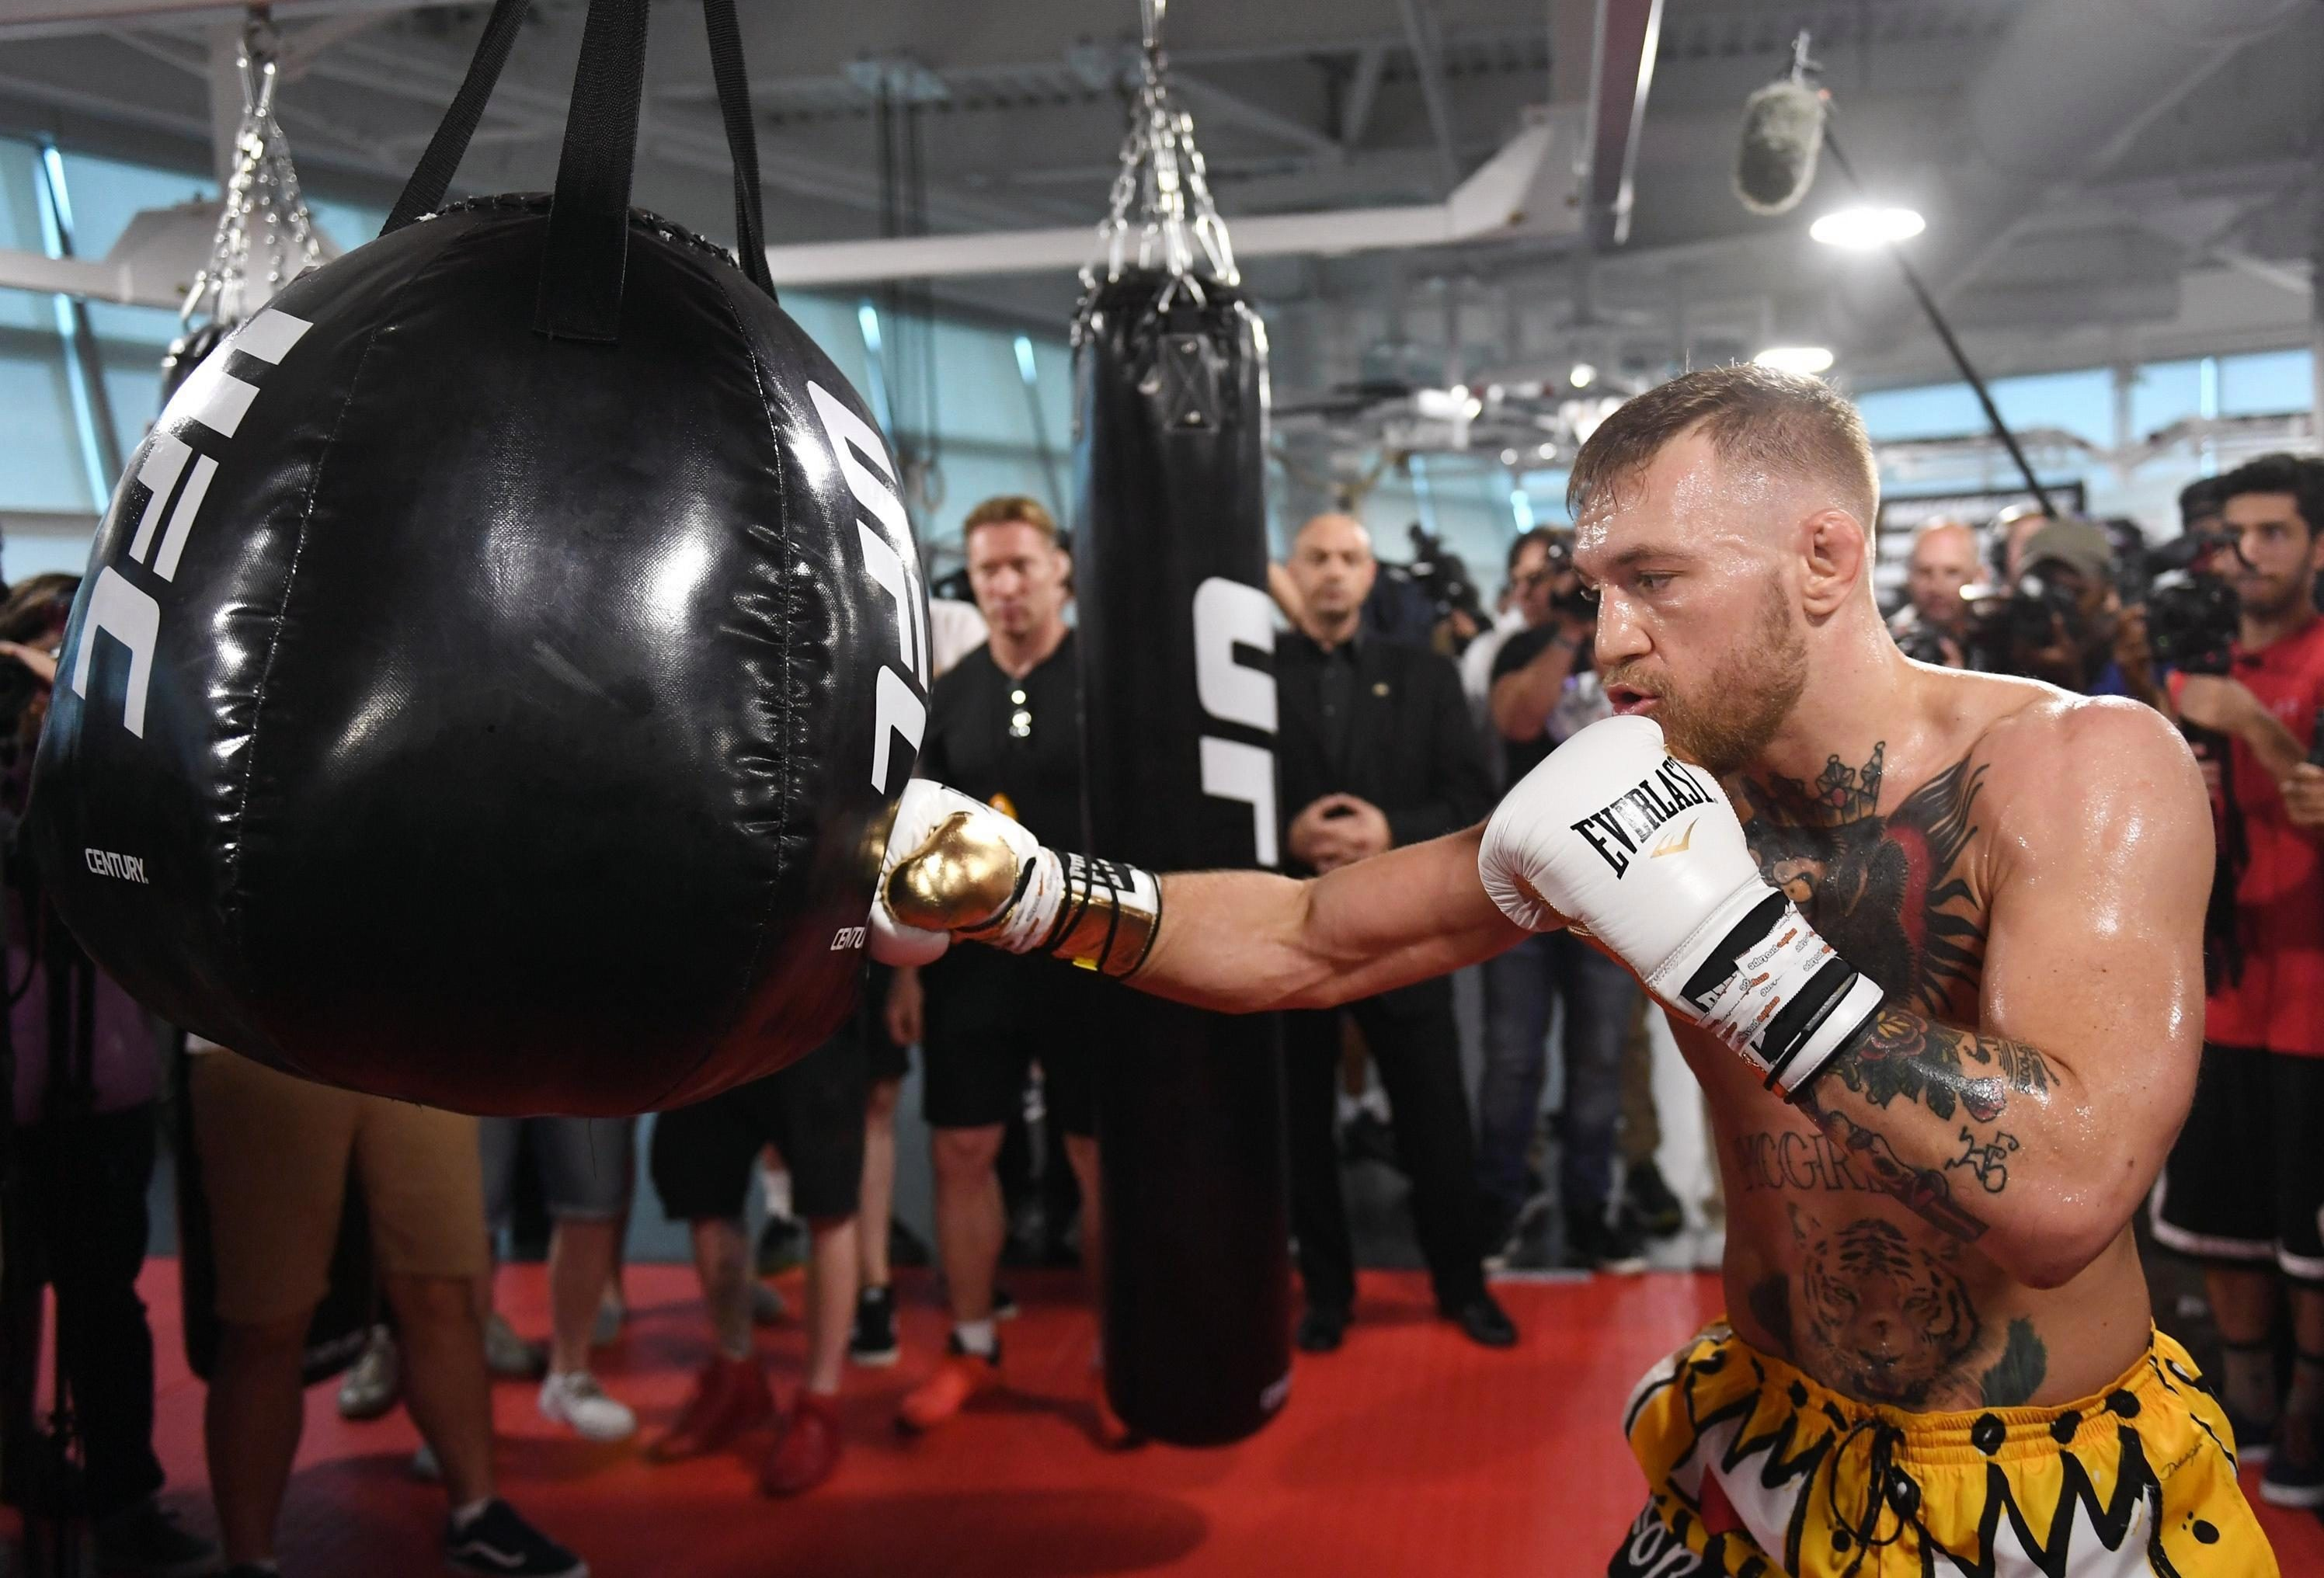 McGregor tried his hand at boxing once before - but the Irishman has not ruled out a move back into the ring